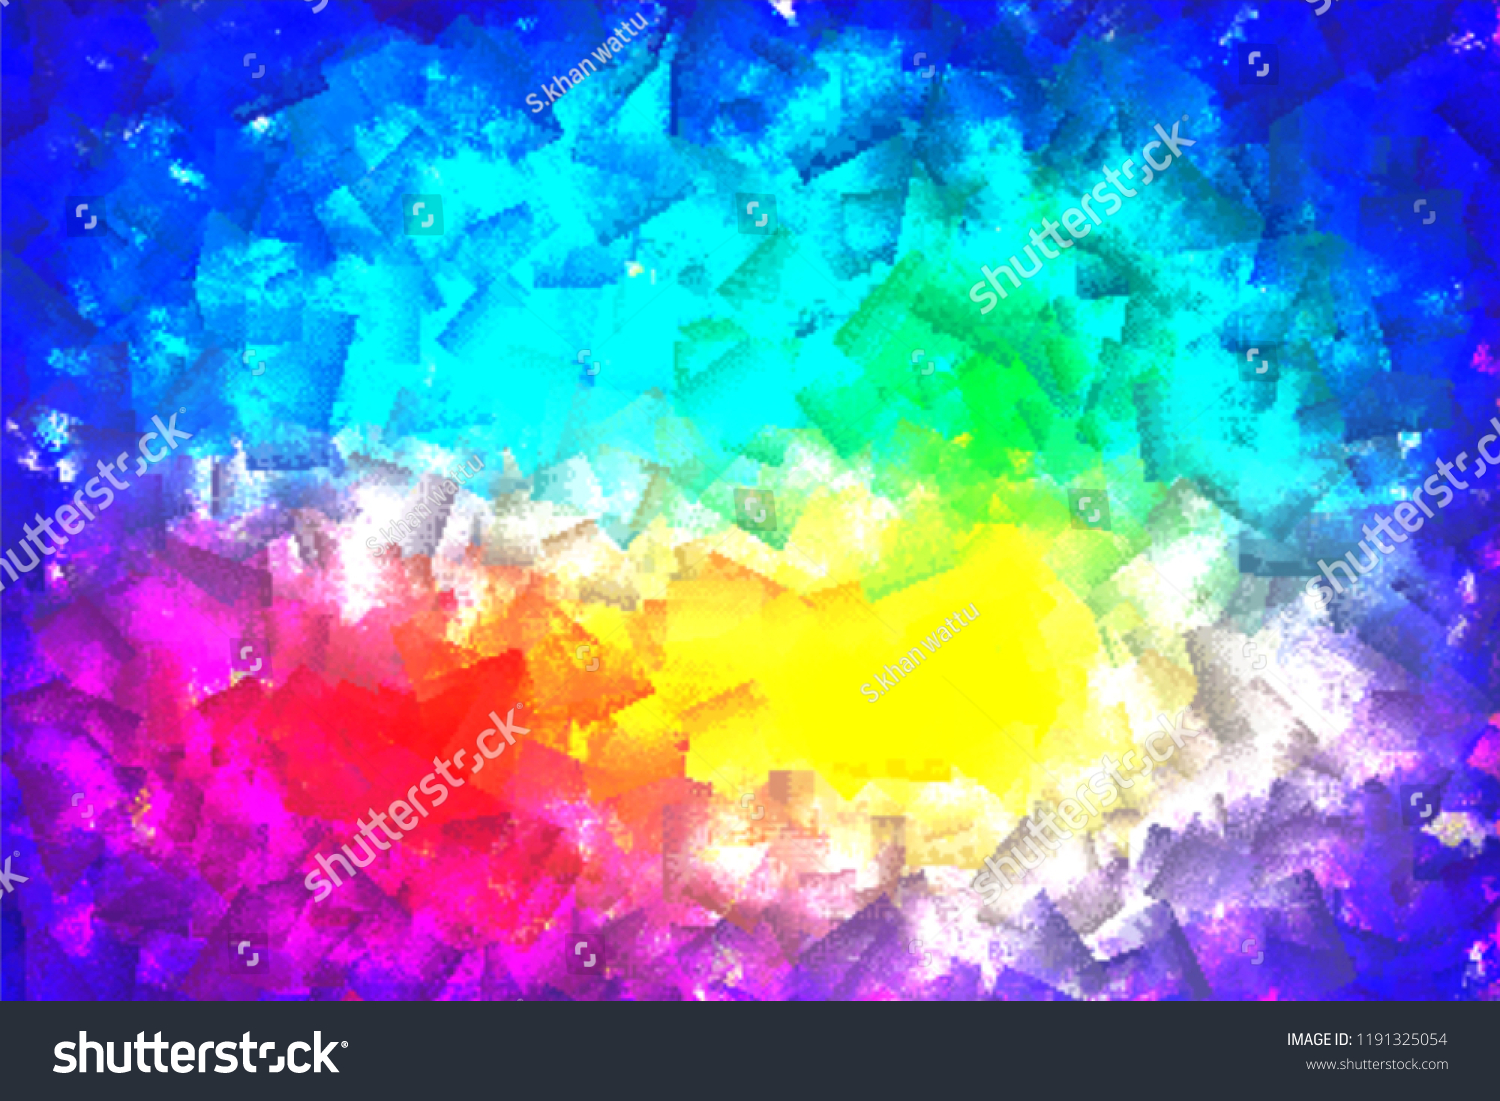 3cf8e7fbdb5 Crystal Look This Background Blue Color Stock Illustration ...